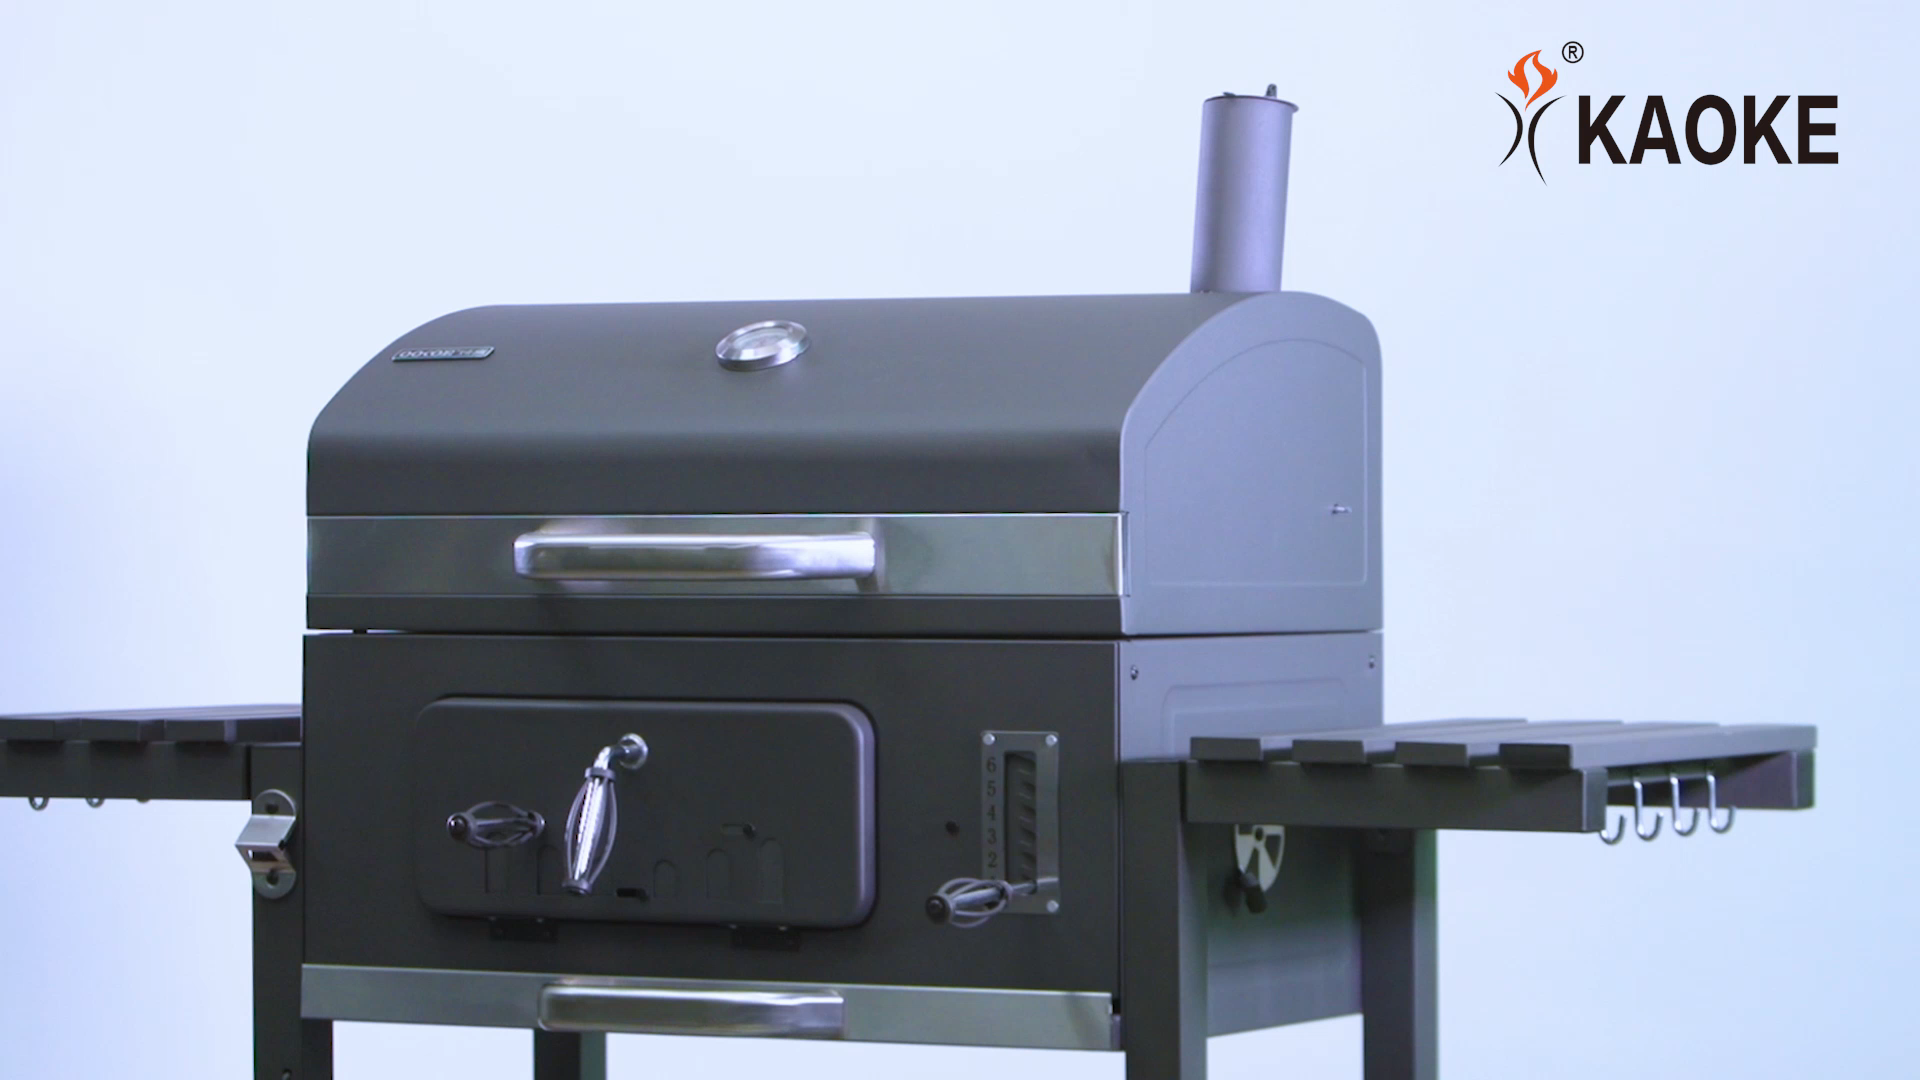 2020 Nieuwe Product Grote Barbecue Tuin Grill Houtskool Bbq Passen Grill Gird Voor Europa